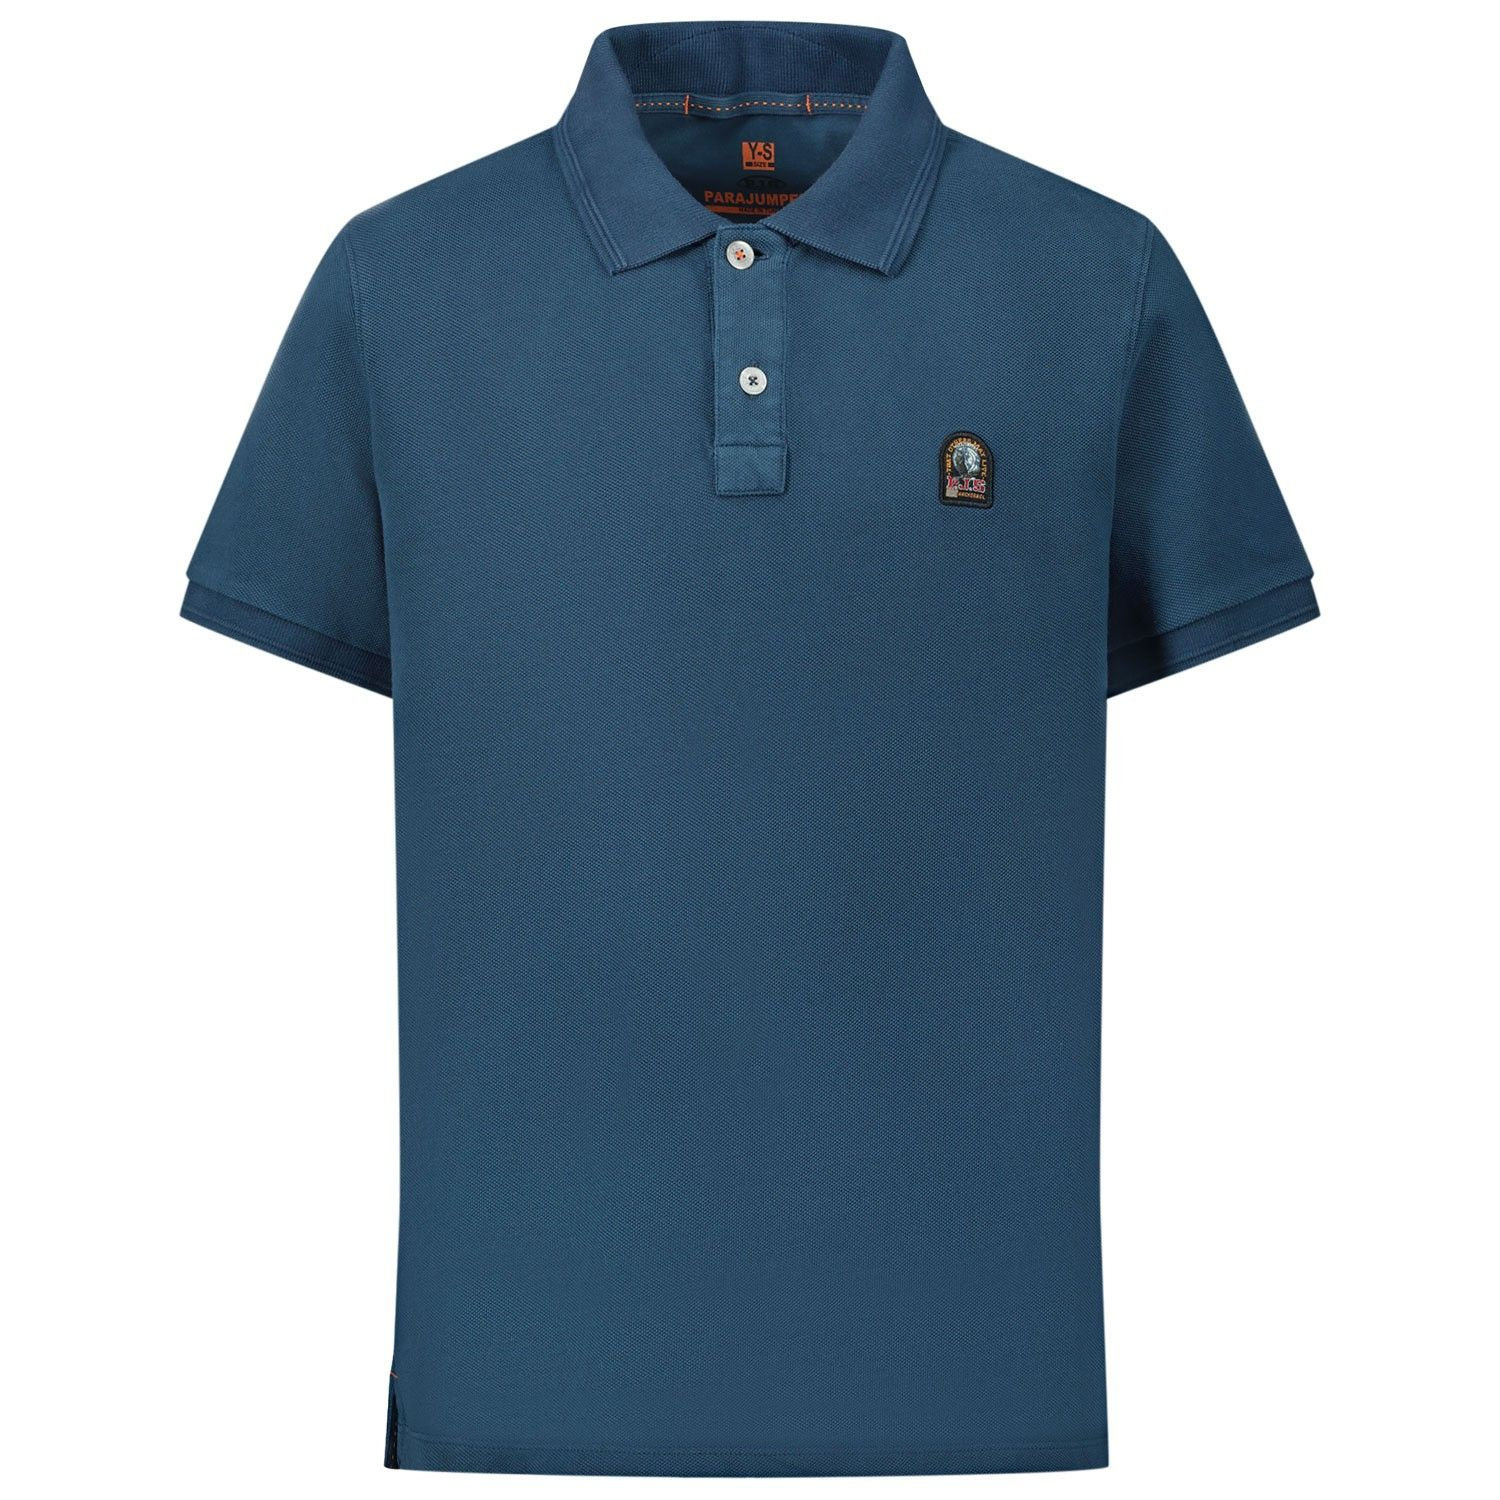 Picture of Parajumpers PO62 kids polo shirt dark blue